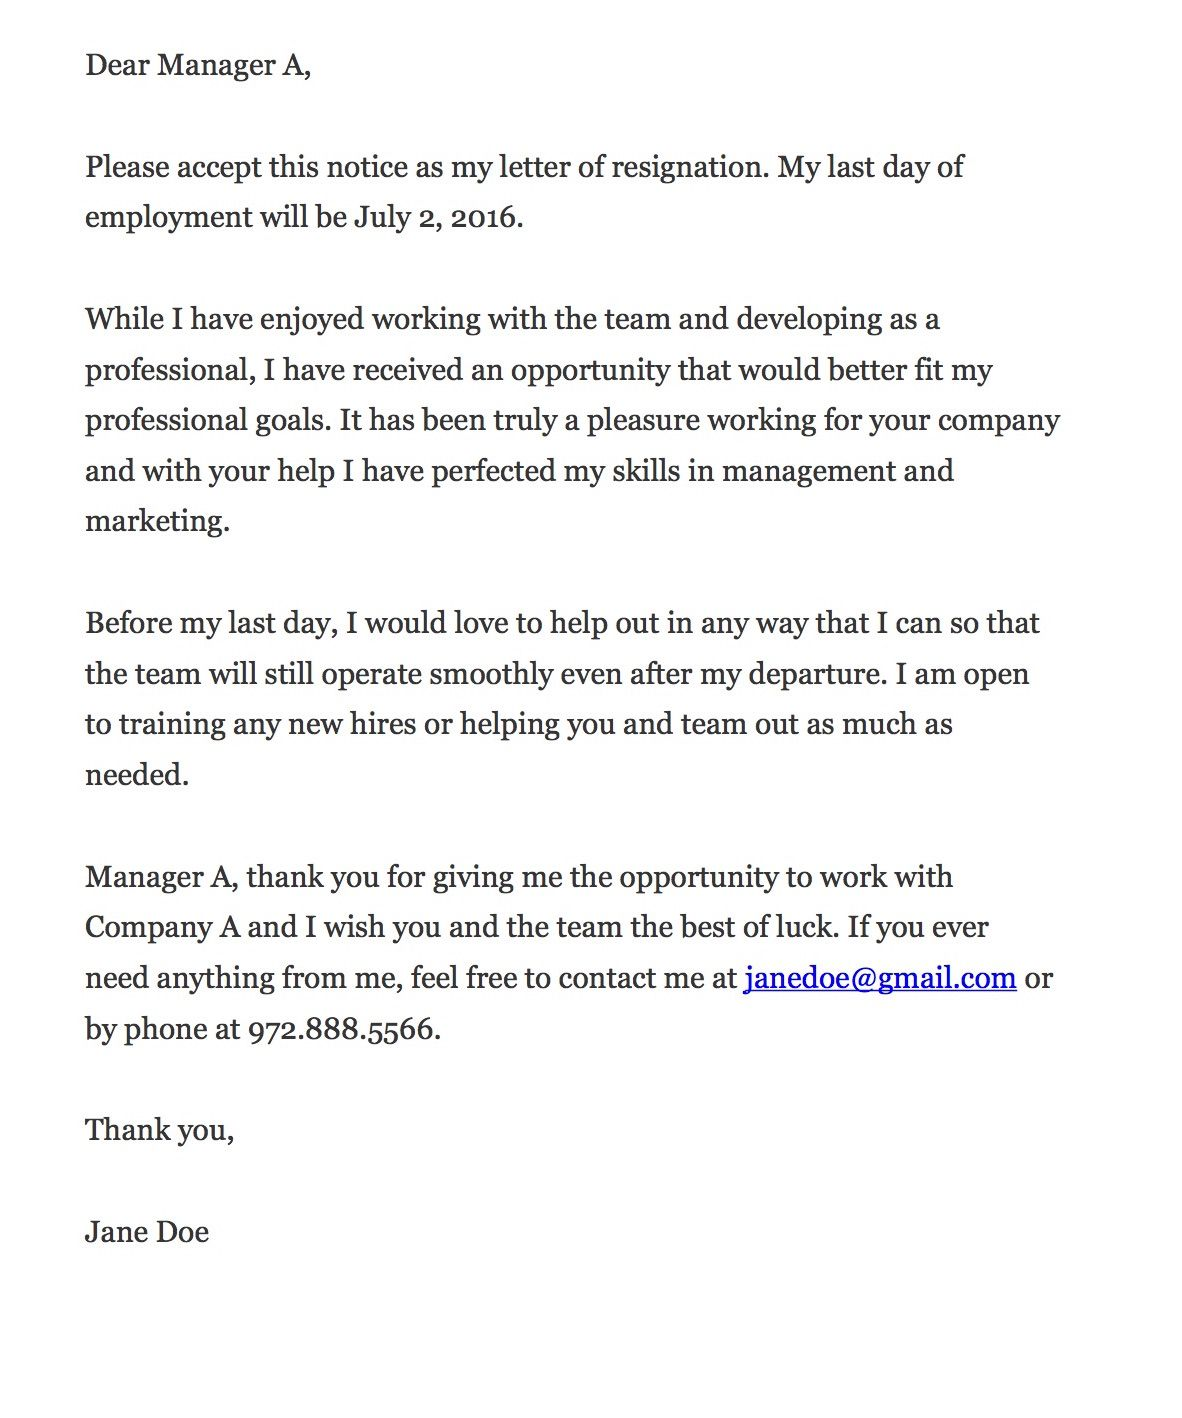 Best 25 resignation letter ideas on pinterest resignation best 25 resignation letter ideas on pinterest resignation sample resignation template and job resignation letter mitanshu Gallery